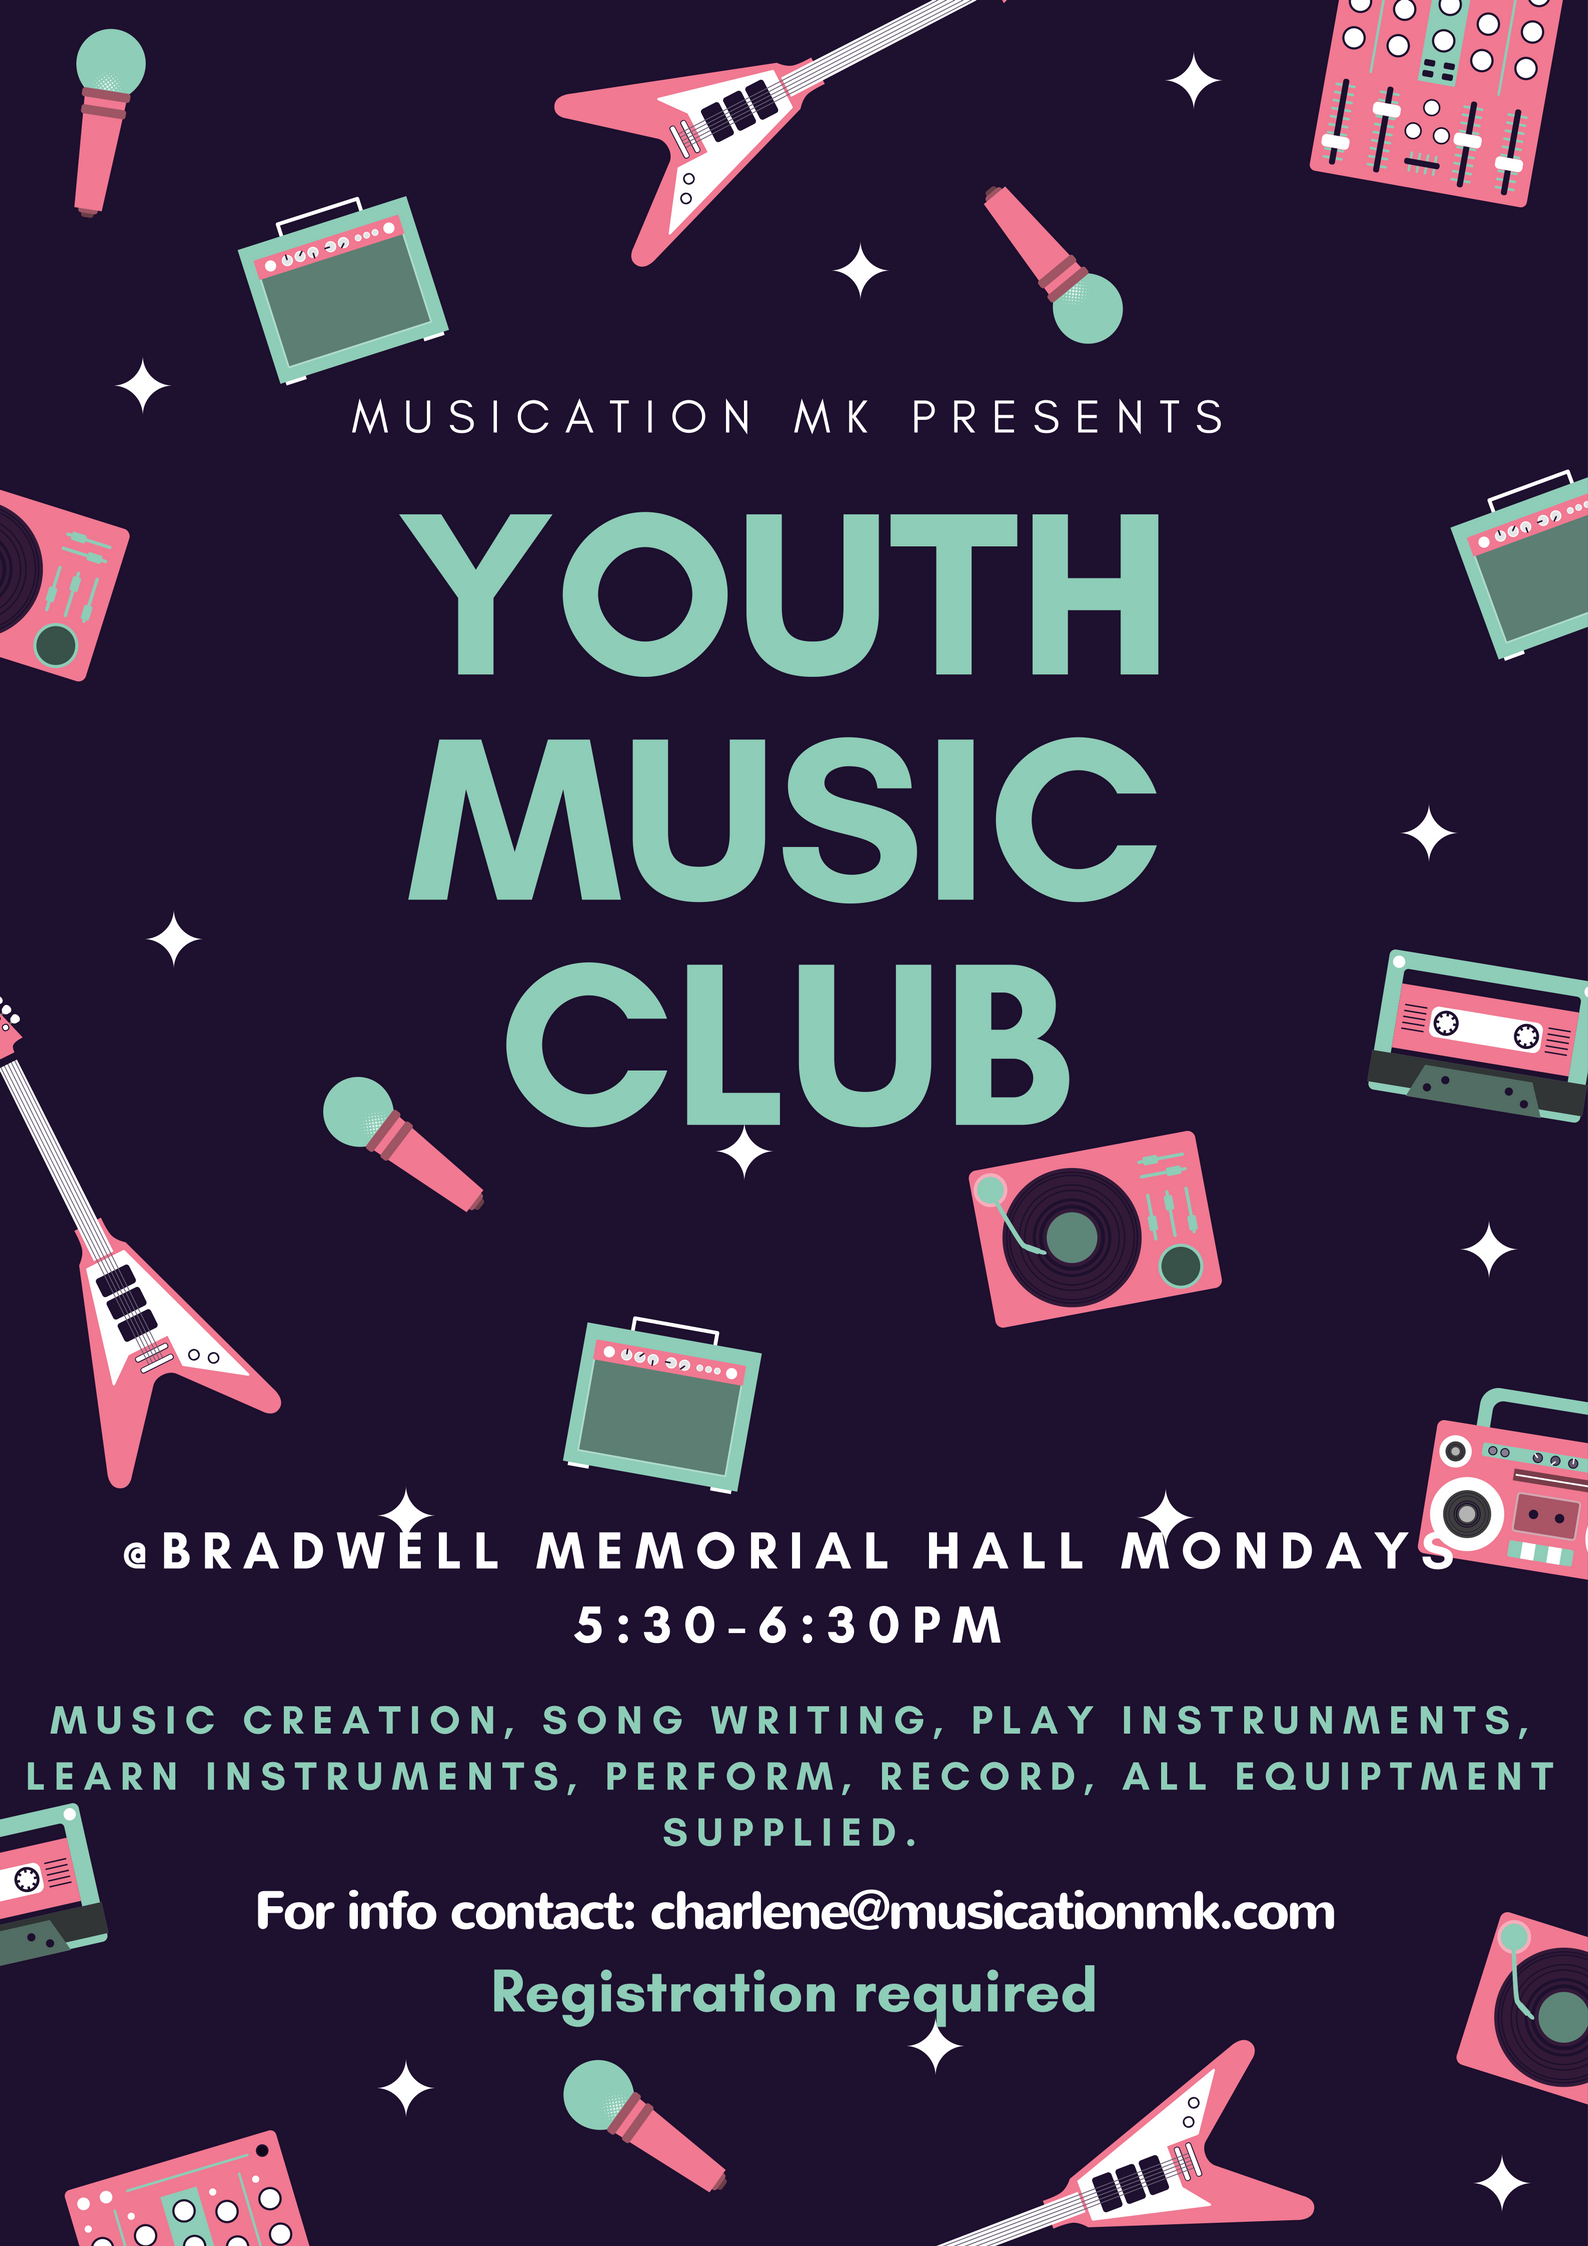 Youth Music Club